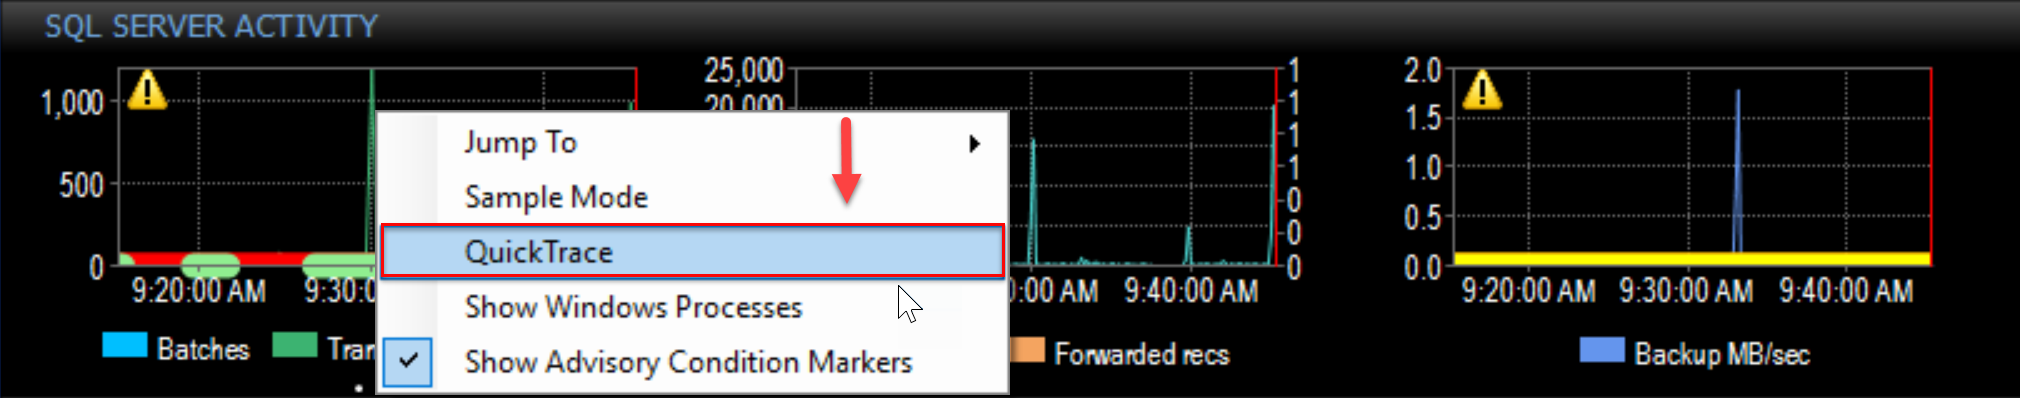 SentryOne Performance Analysis Dashboard select QuickTrace from the context menu